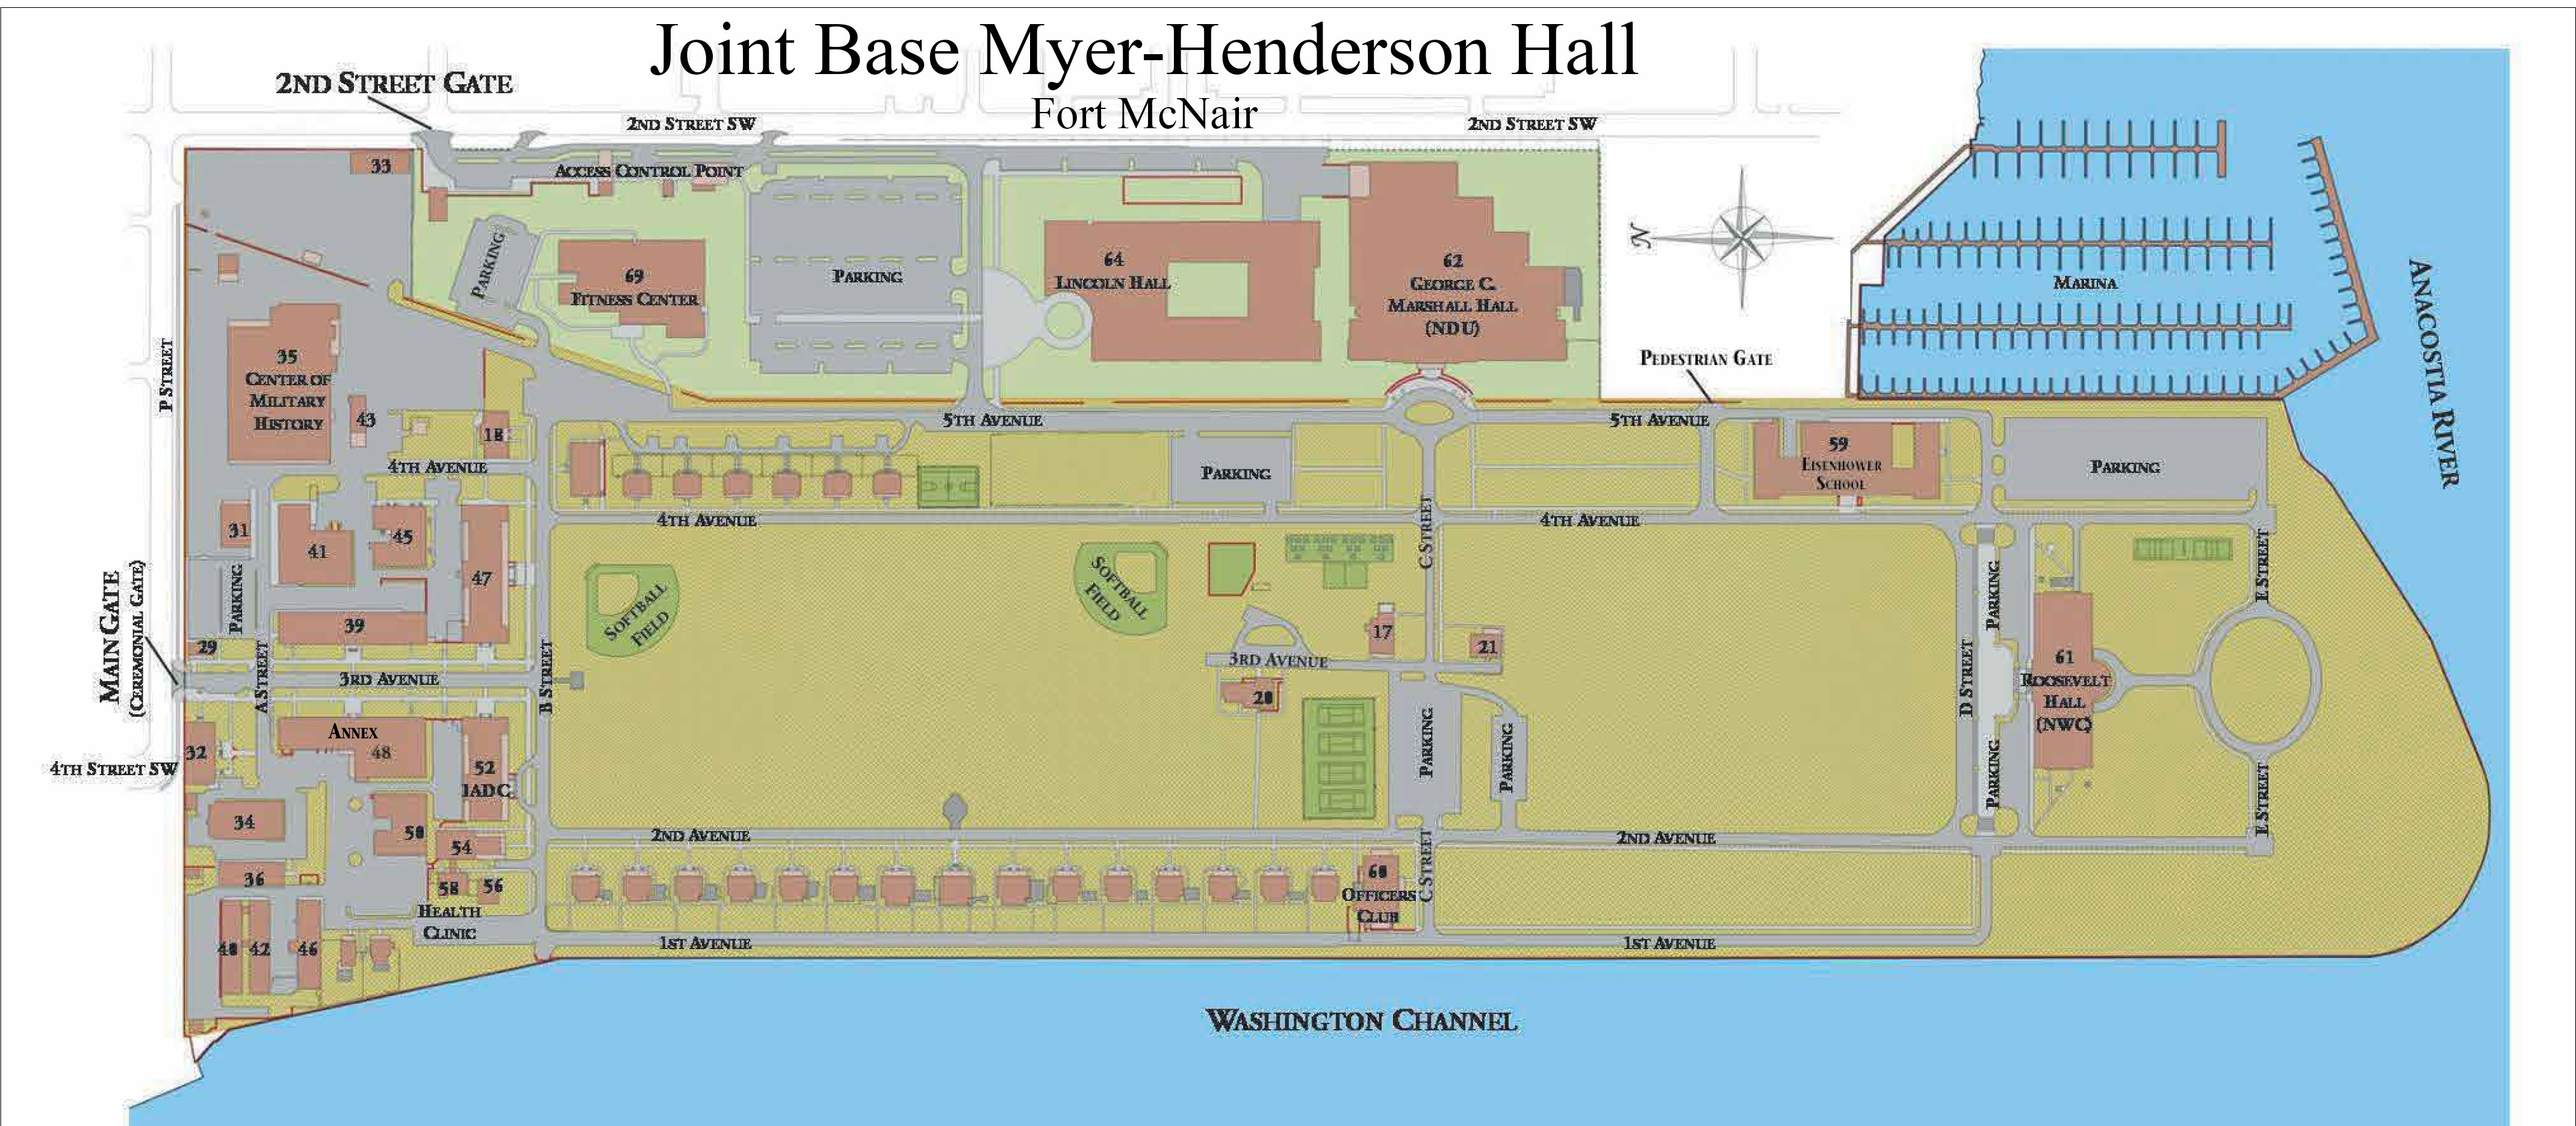 JBM-HH Gates Access: Fort Myer, Henderson Hall, Virginia ... on map of ten thousand islands, map of st pete, map of omaha council bluffs, map of ft morgan, map of fort pierce, map of ft jackson, map of ft lauderdale, map of casselberry, map fort myers fl, map of ft walton, map of fort myers beach, map of ft wood, map of florida, map of punta gorda, map of apopka, map of ft lewis, map of ft collins co, map of inverness, map of gulfport, map of lake buena vista,